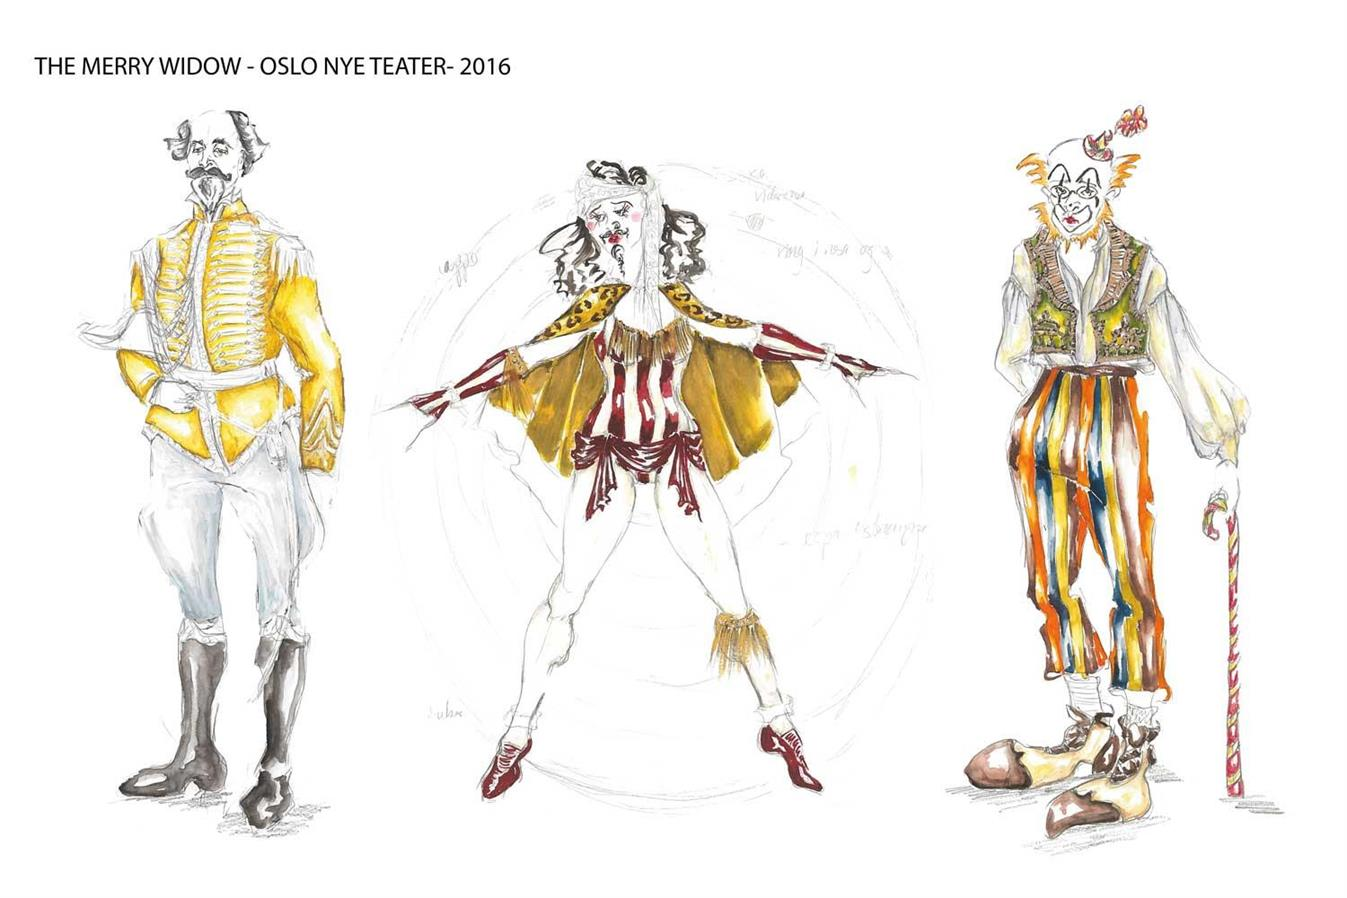 The Merry Widow - Oslo Nye Teater - Director: Svein Sturla Hugnes - Costume design: Christina Lovery